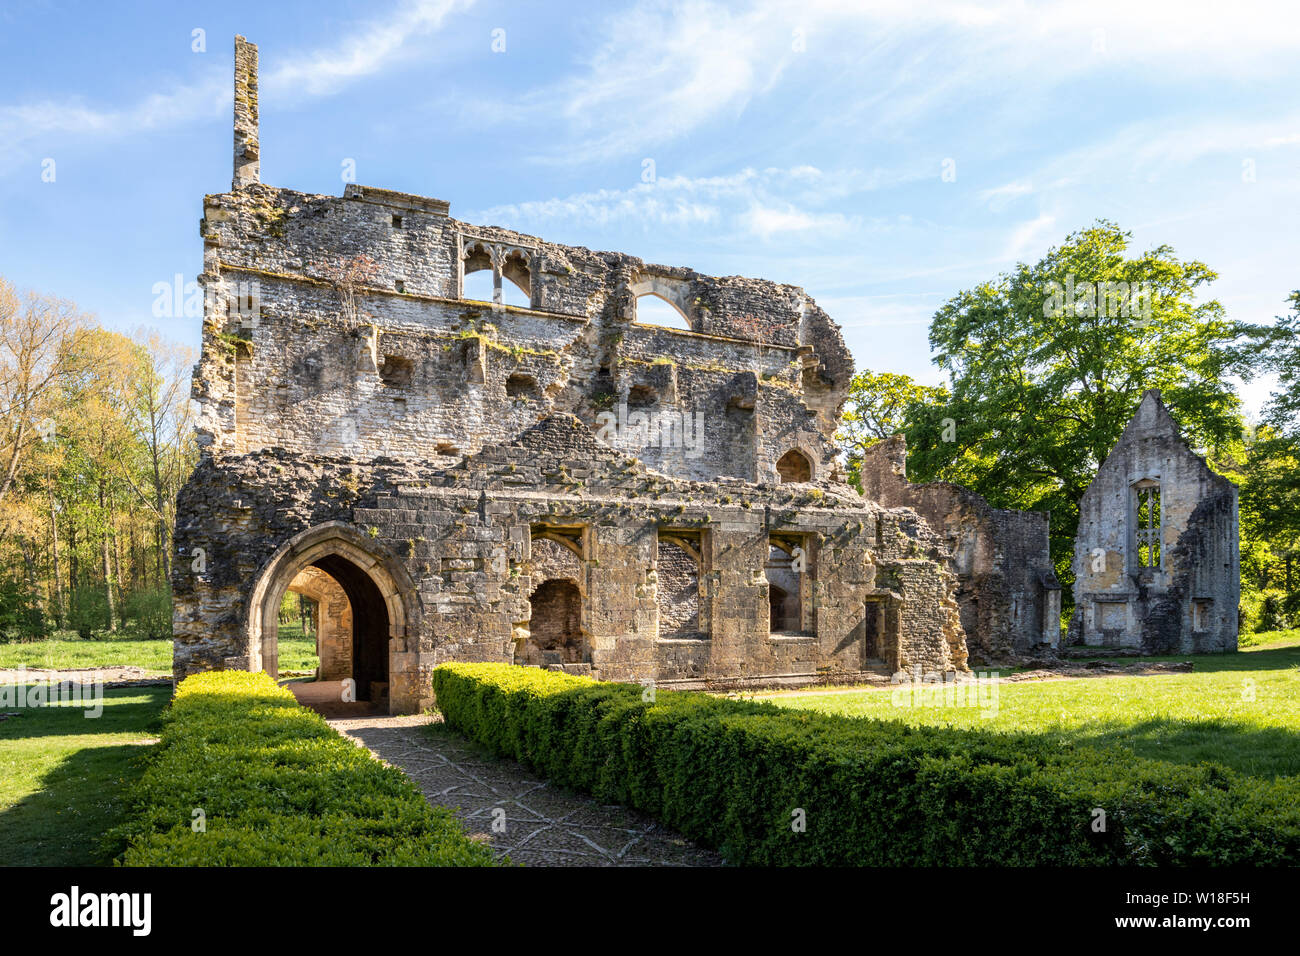 Evening light on the ruins of Minster Lovell Hall, a 15th century manor house beside the River Windrush, Minster Lovell, Oxfordshire UK Stock Photo